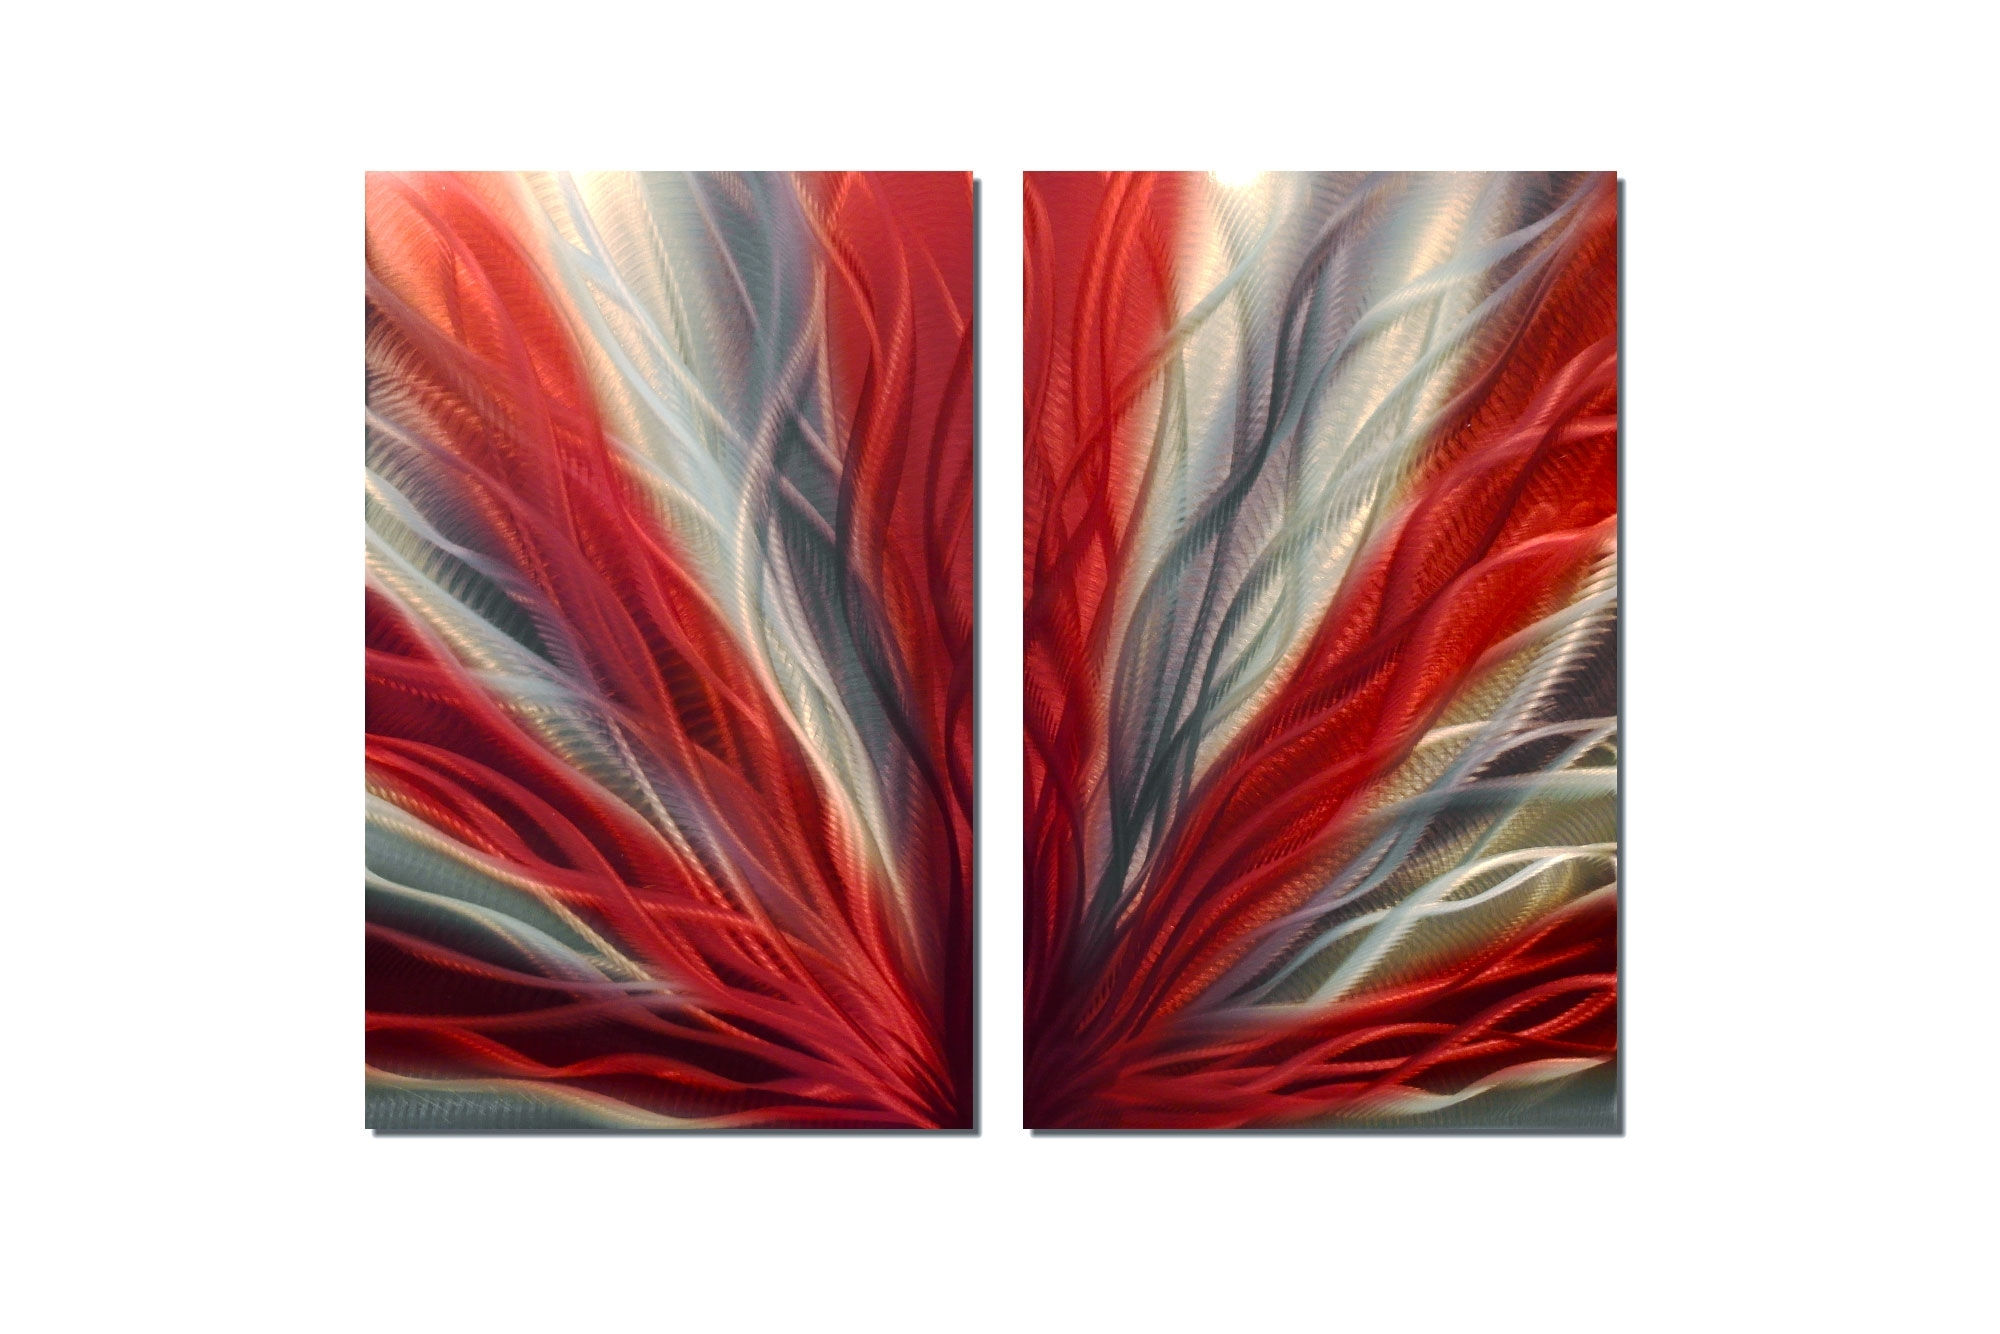 Red Wall Art Regarding Trendy Radiance Red 31 – Metal Wall Art Abstract Sculpture Modern Decor (View 11 of 15)